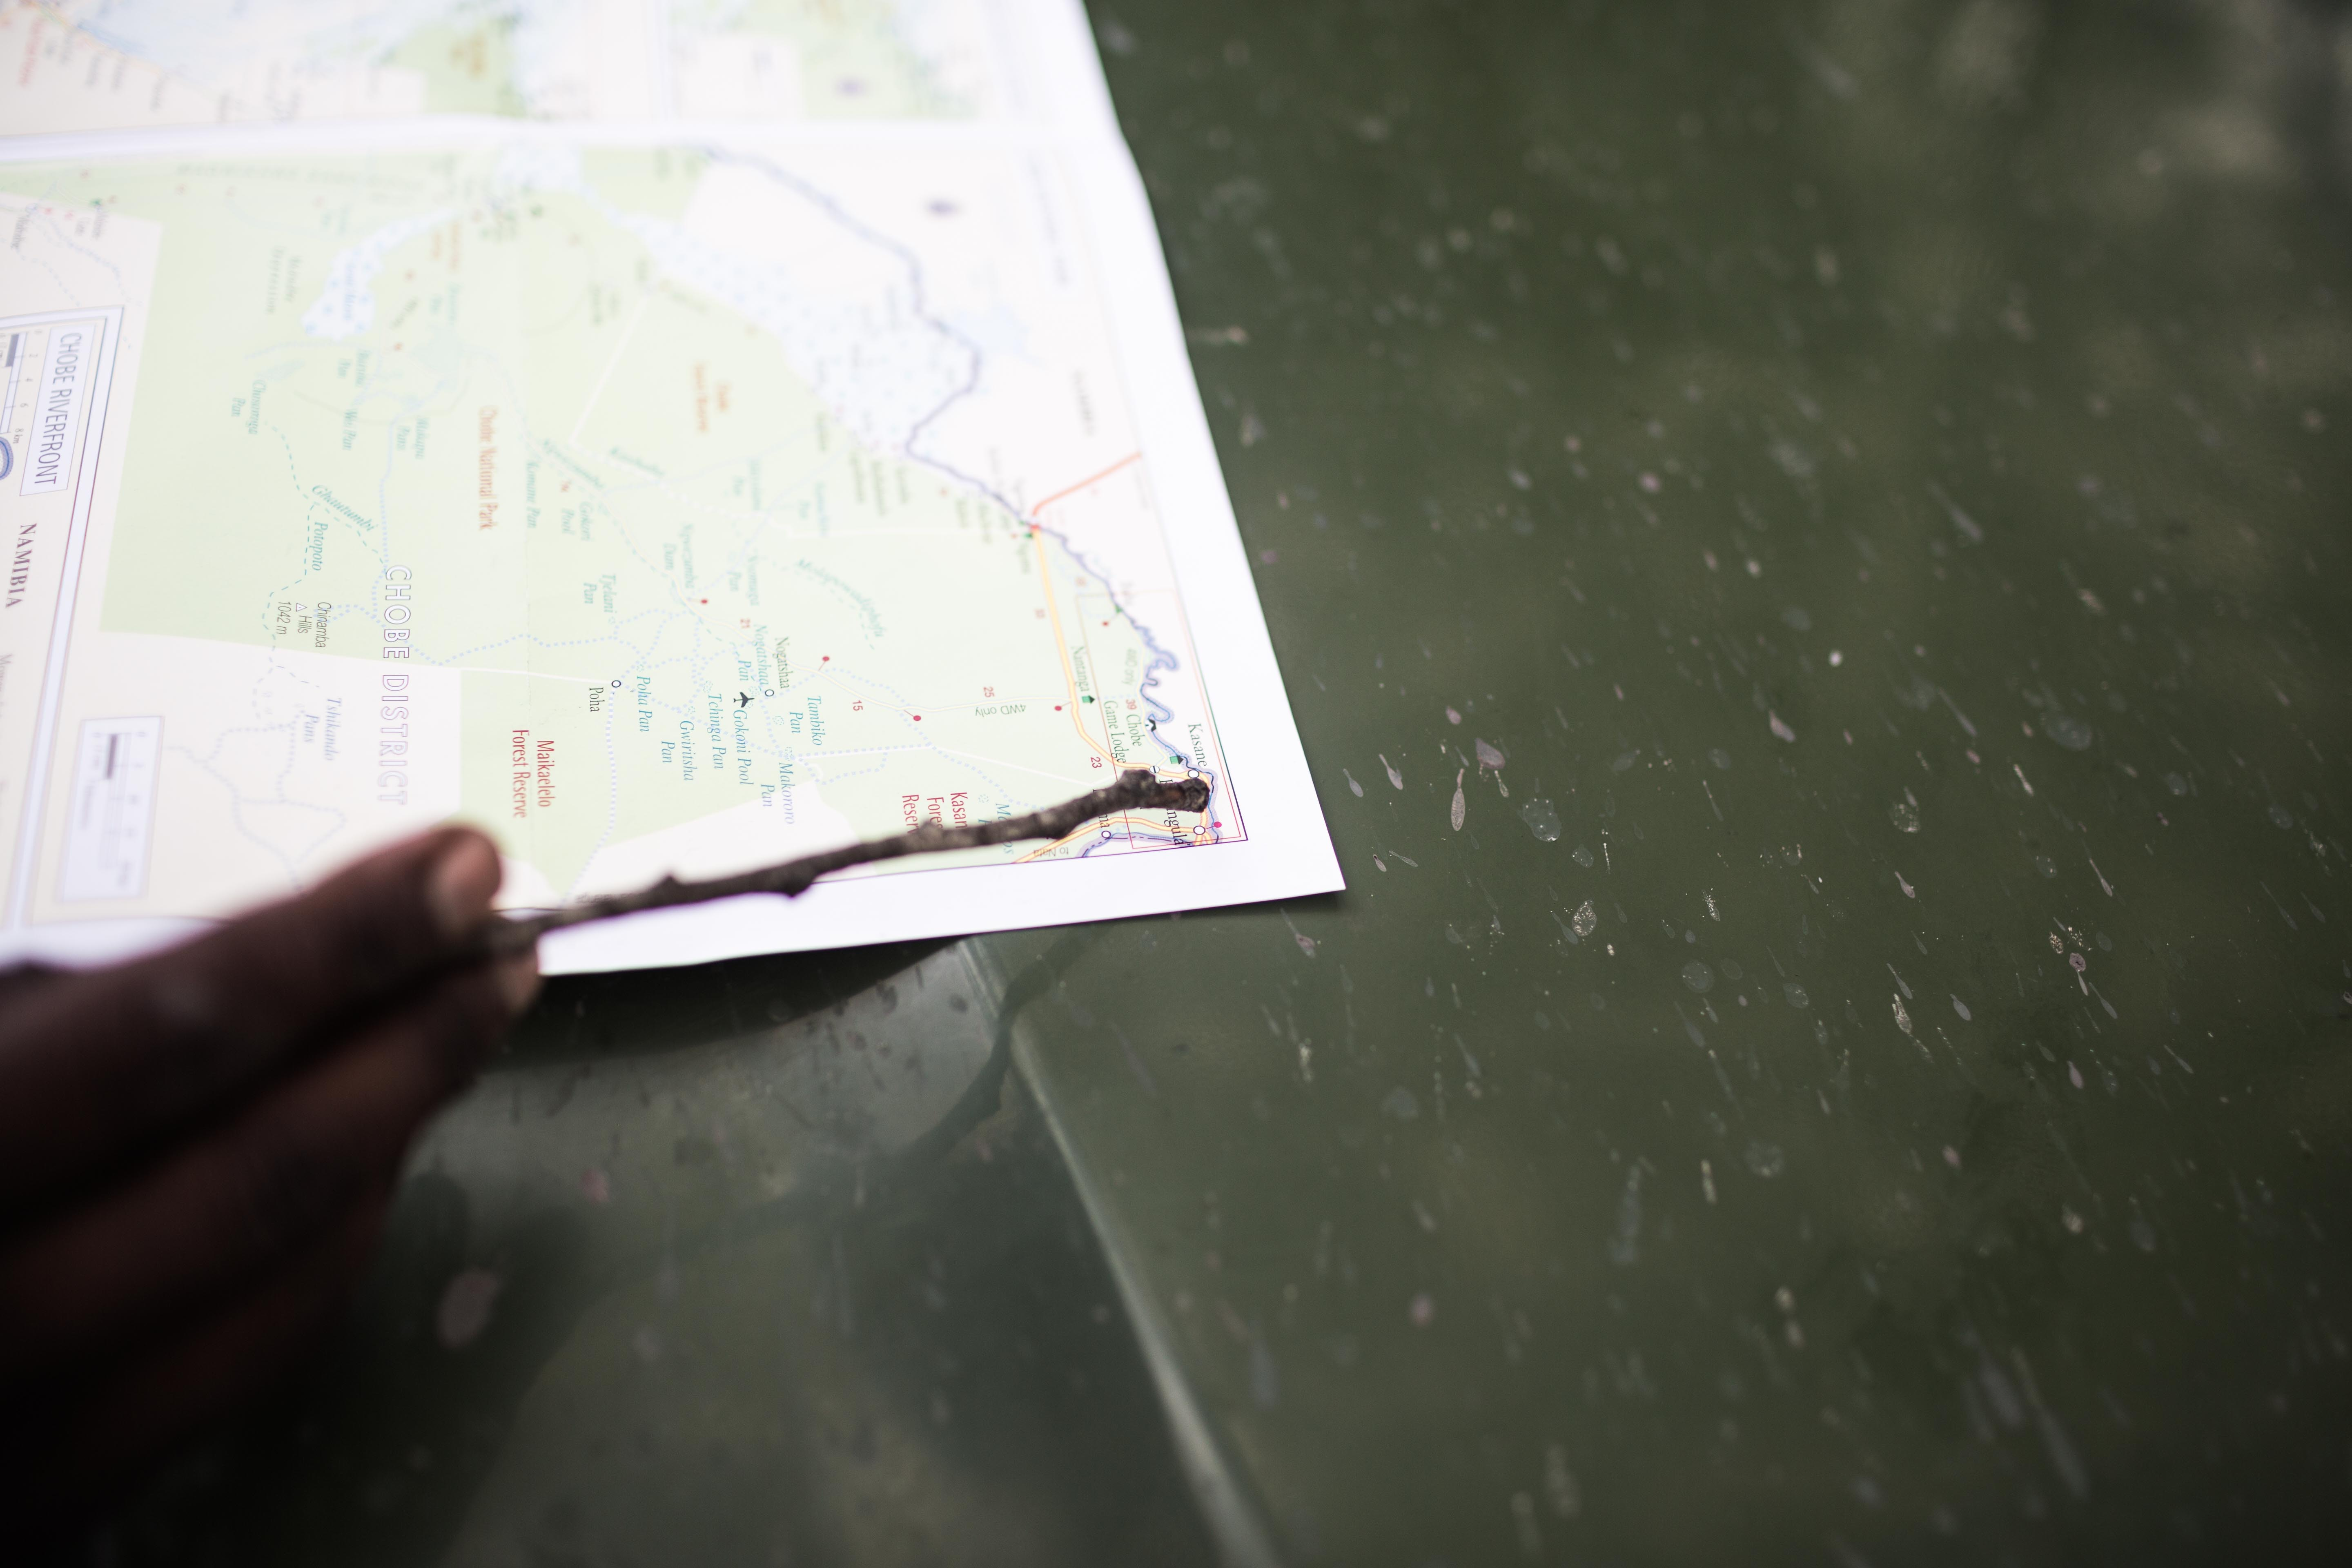 A close-up of a person's hand pointing to a location on a map with a stick